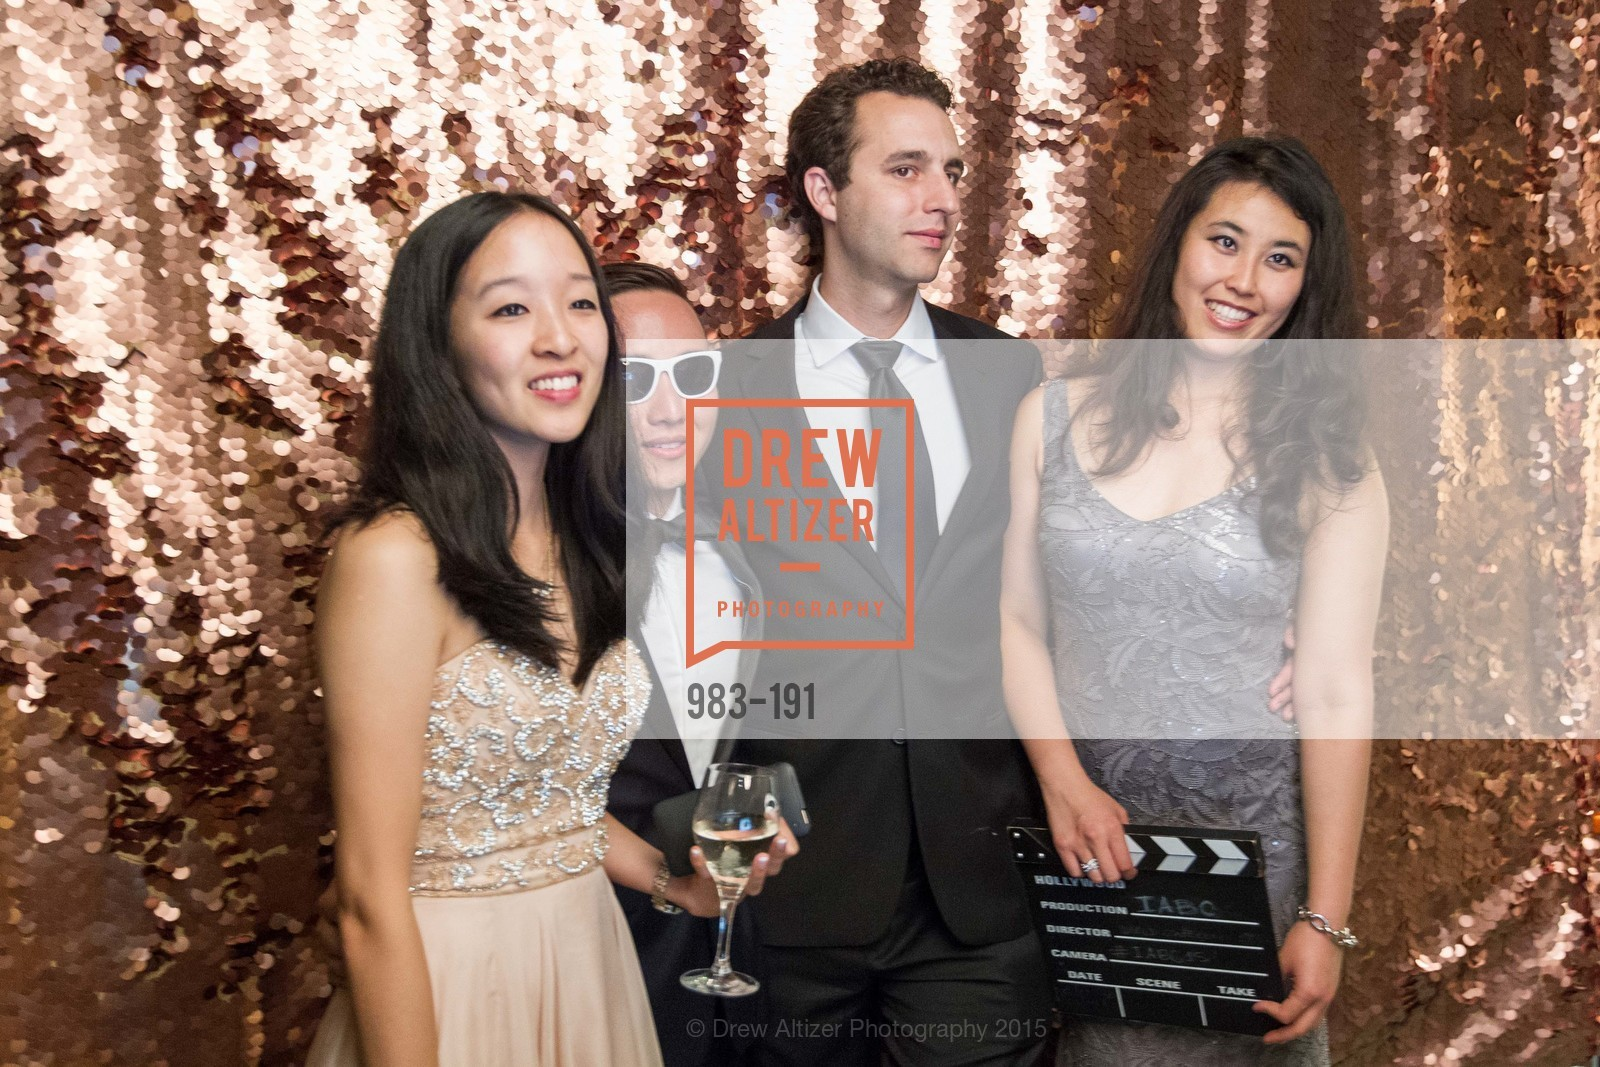 Extras, Spinsters of San Francisco Annual Ball 2015, June 28th, 2015, Photo,Drew Altizer, Drew Altizer Photography, full-service event agency, private events, San Francisco photographer, photographer California